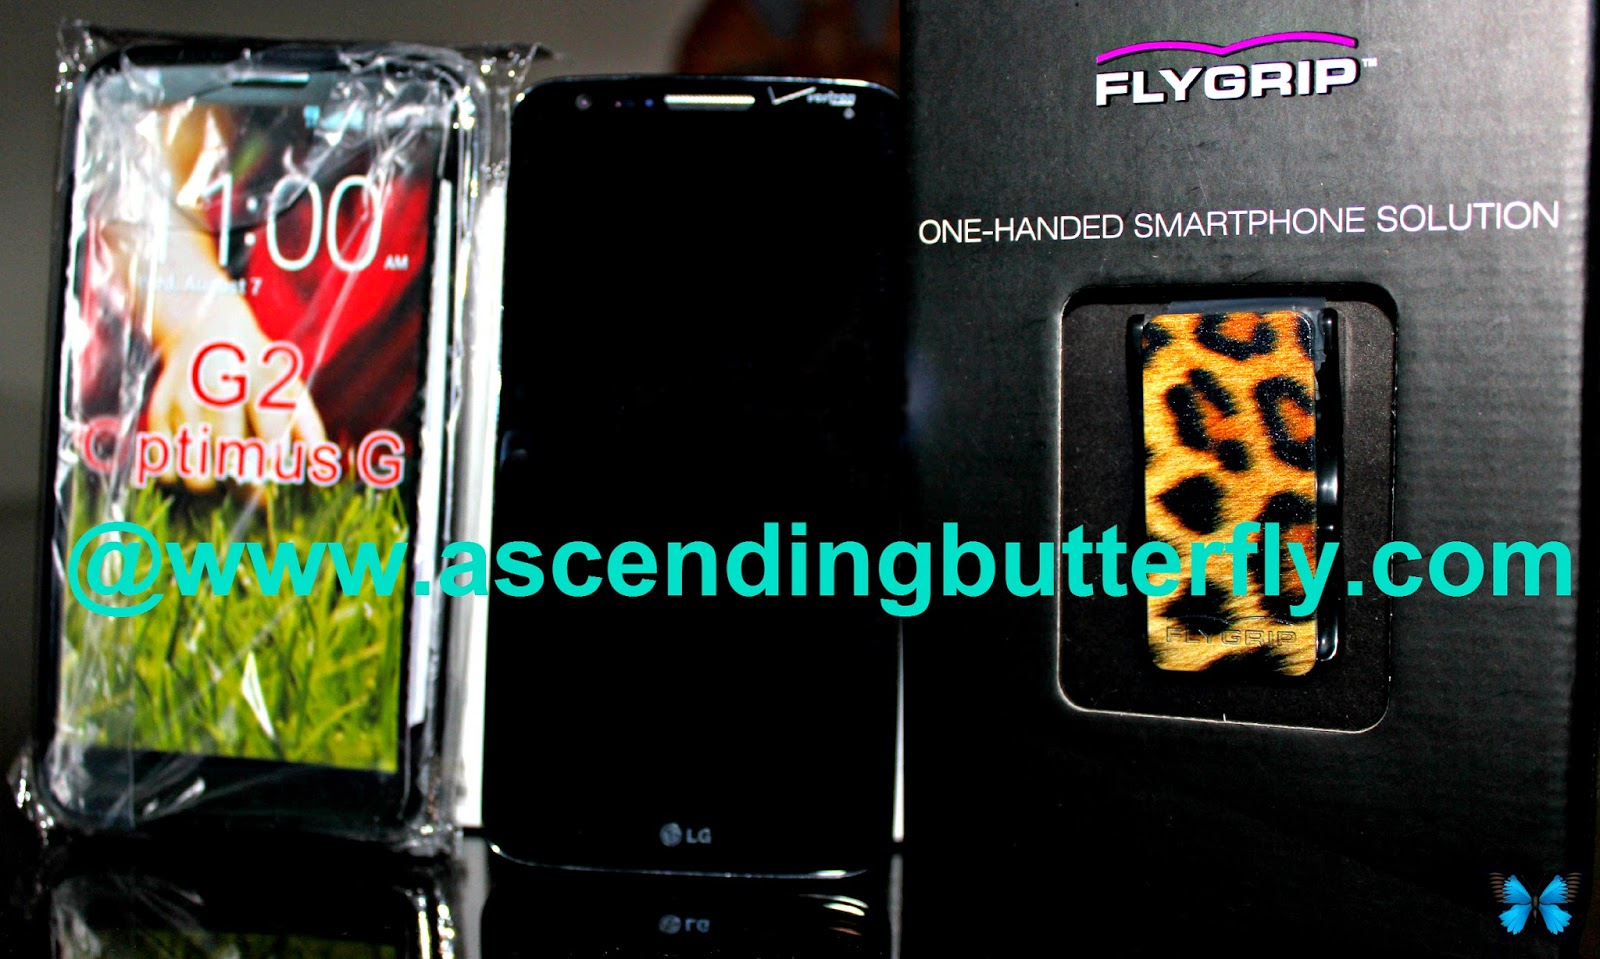 LG G2 Phone Cover, LG G2 Smartphone for Verizon, FlyGrip, One-handed Smartphone Solution,